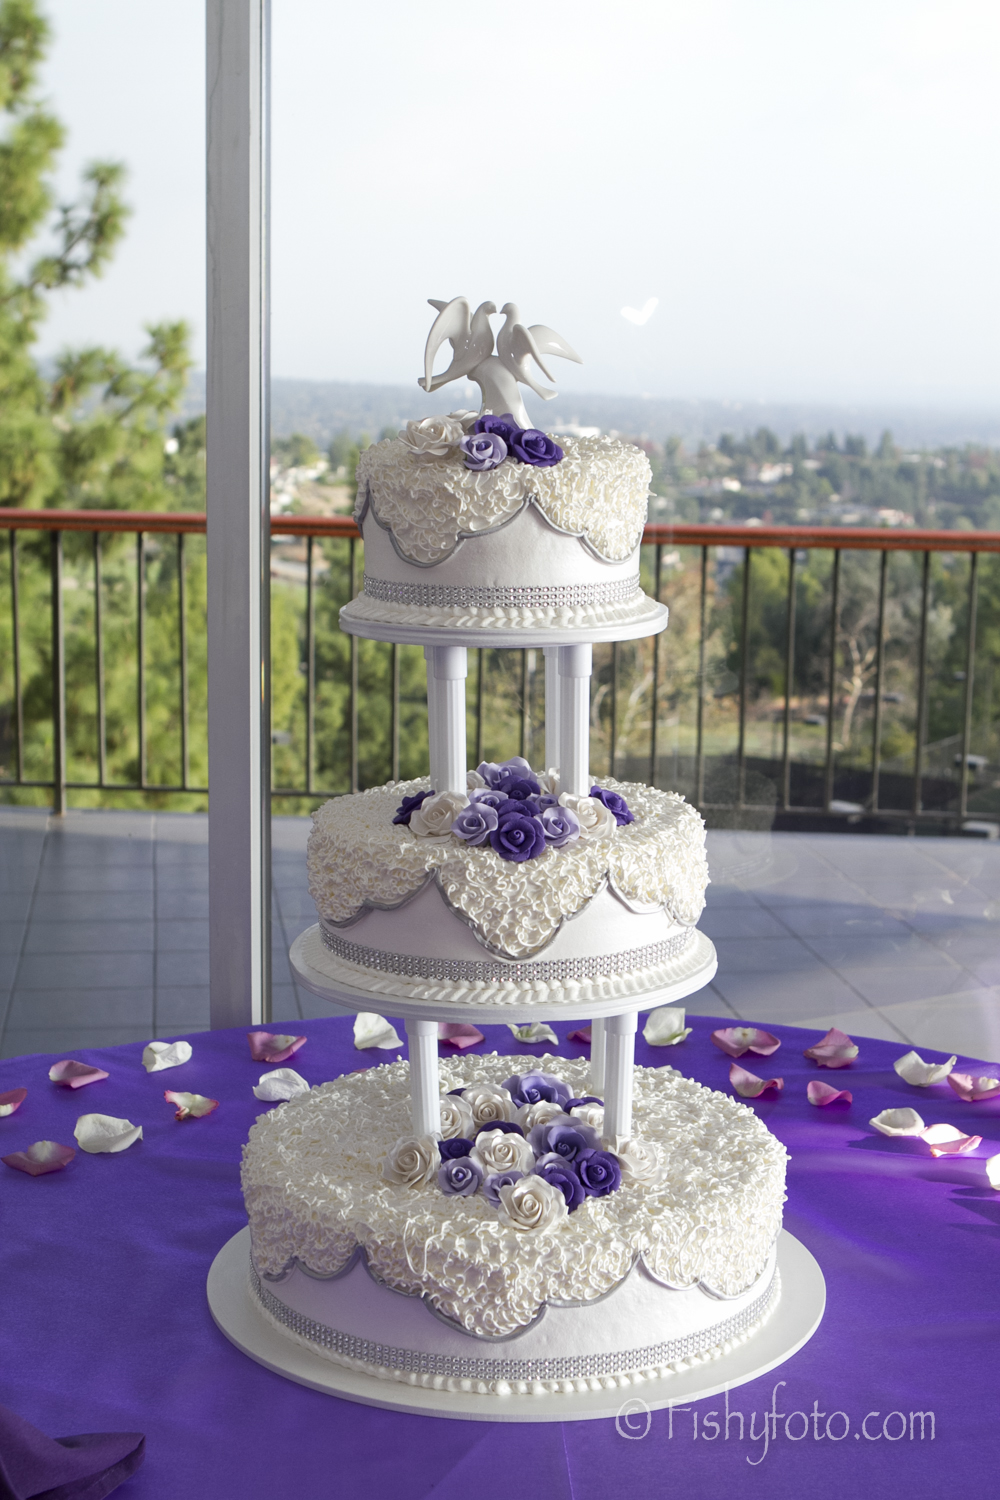 Three tiered cake at a wedding.  #FishyFoto